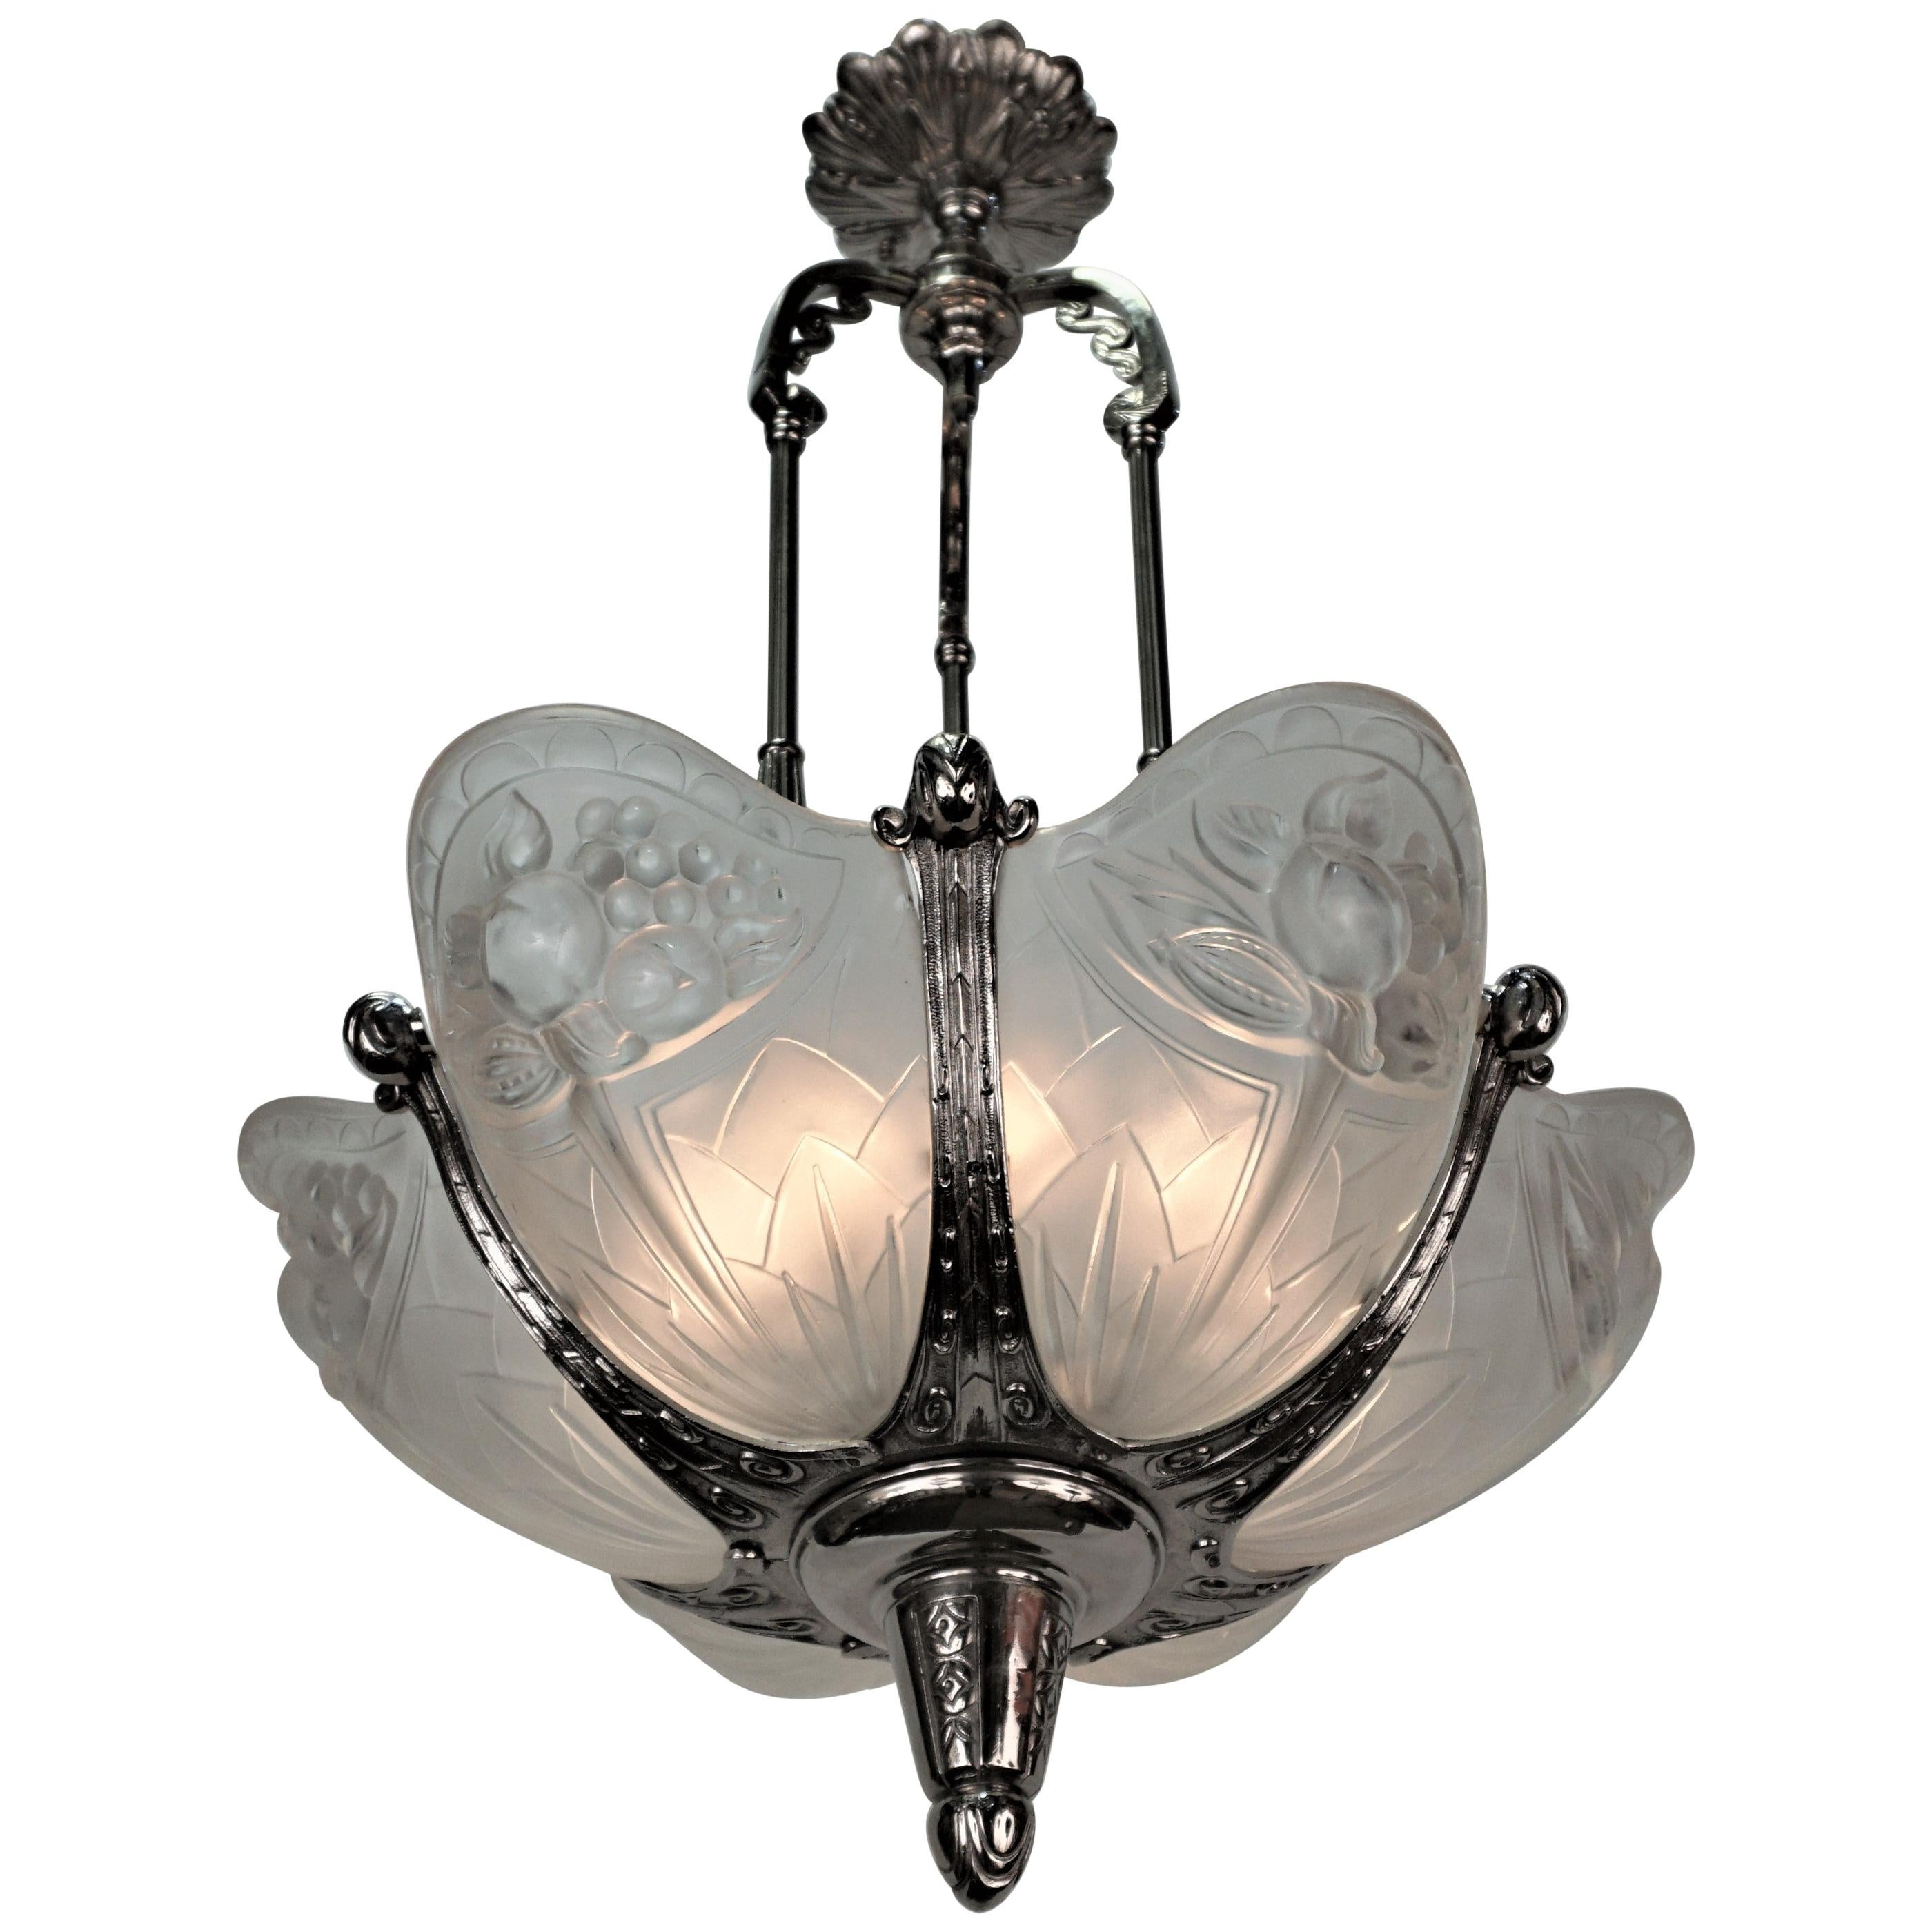 French 1930's Art Deco Chandelier by P. Gilles